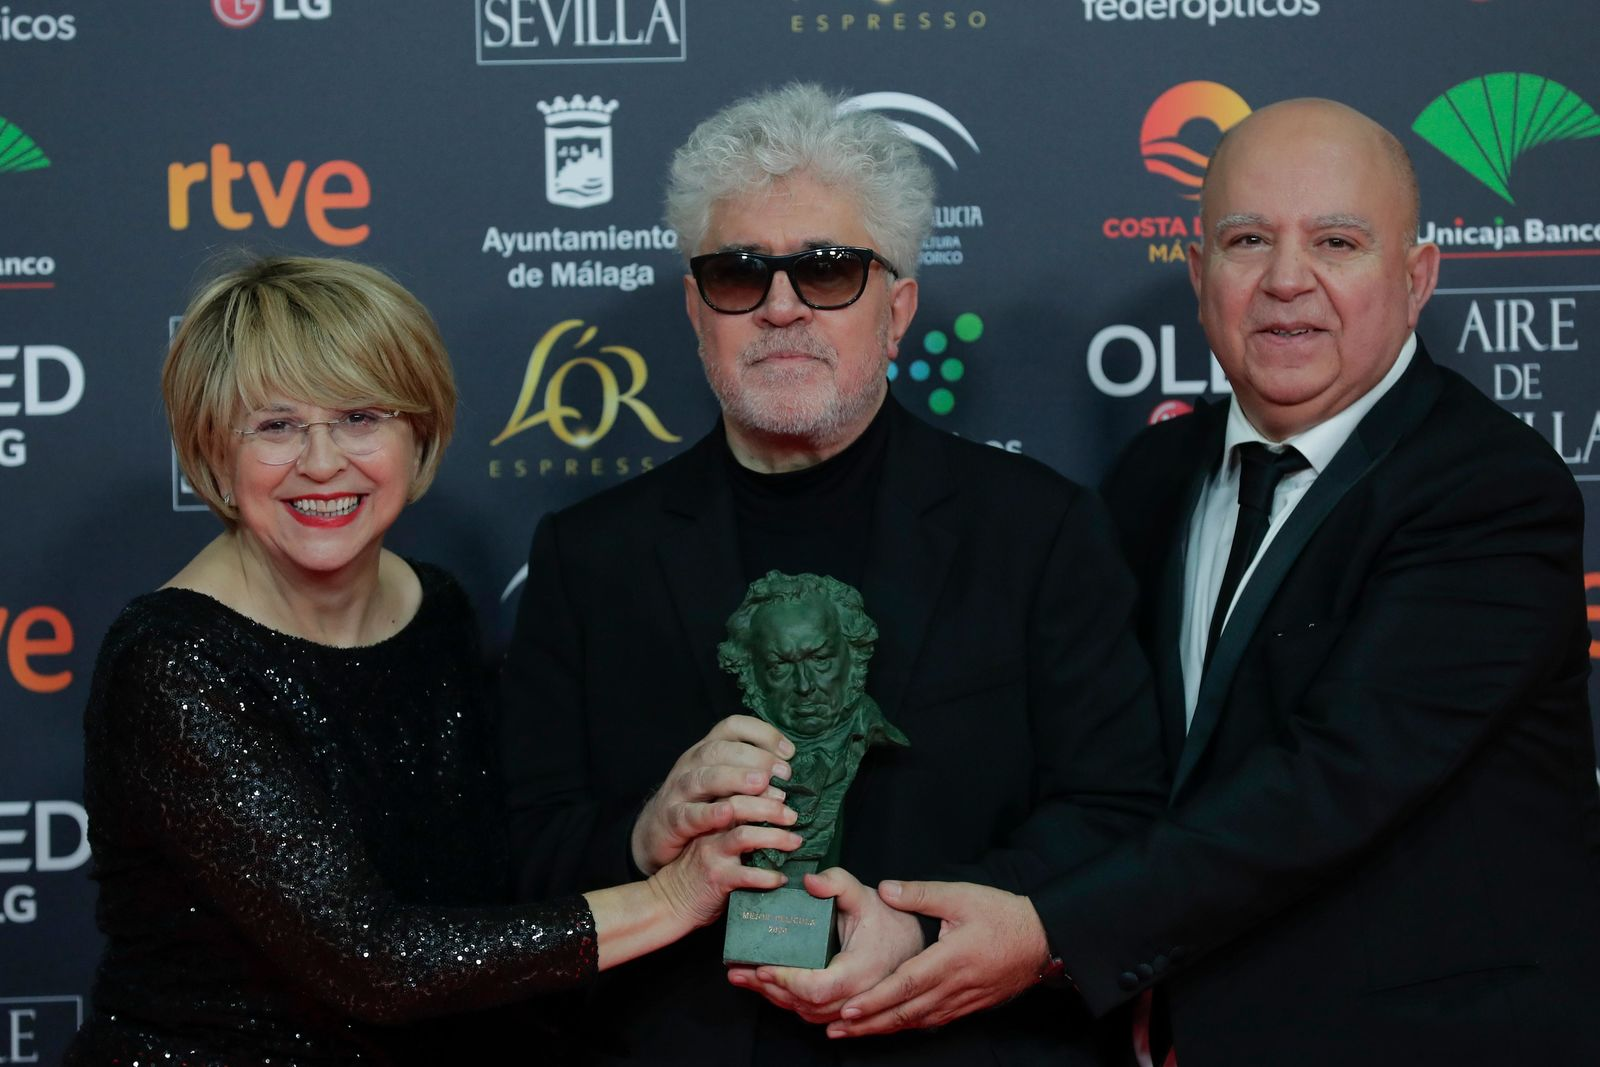 "Spanish film director Pedro Almodovar, center, and producers Agustin Almodovar and Esther Garcia, left, pose with their trophy after winning the best film award for ""Dolor y gloria"" during the Goya Film Awards Ceremony in Malaga, southern Spain, early Sunday, Jan. 26, 2020. The annual Goya Awards are Spain's main national film awards. (AP Photo/Manu Fernandez)"